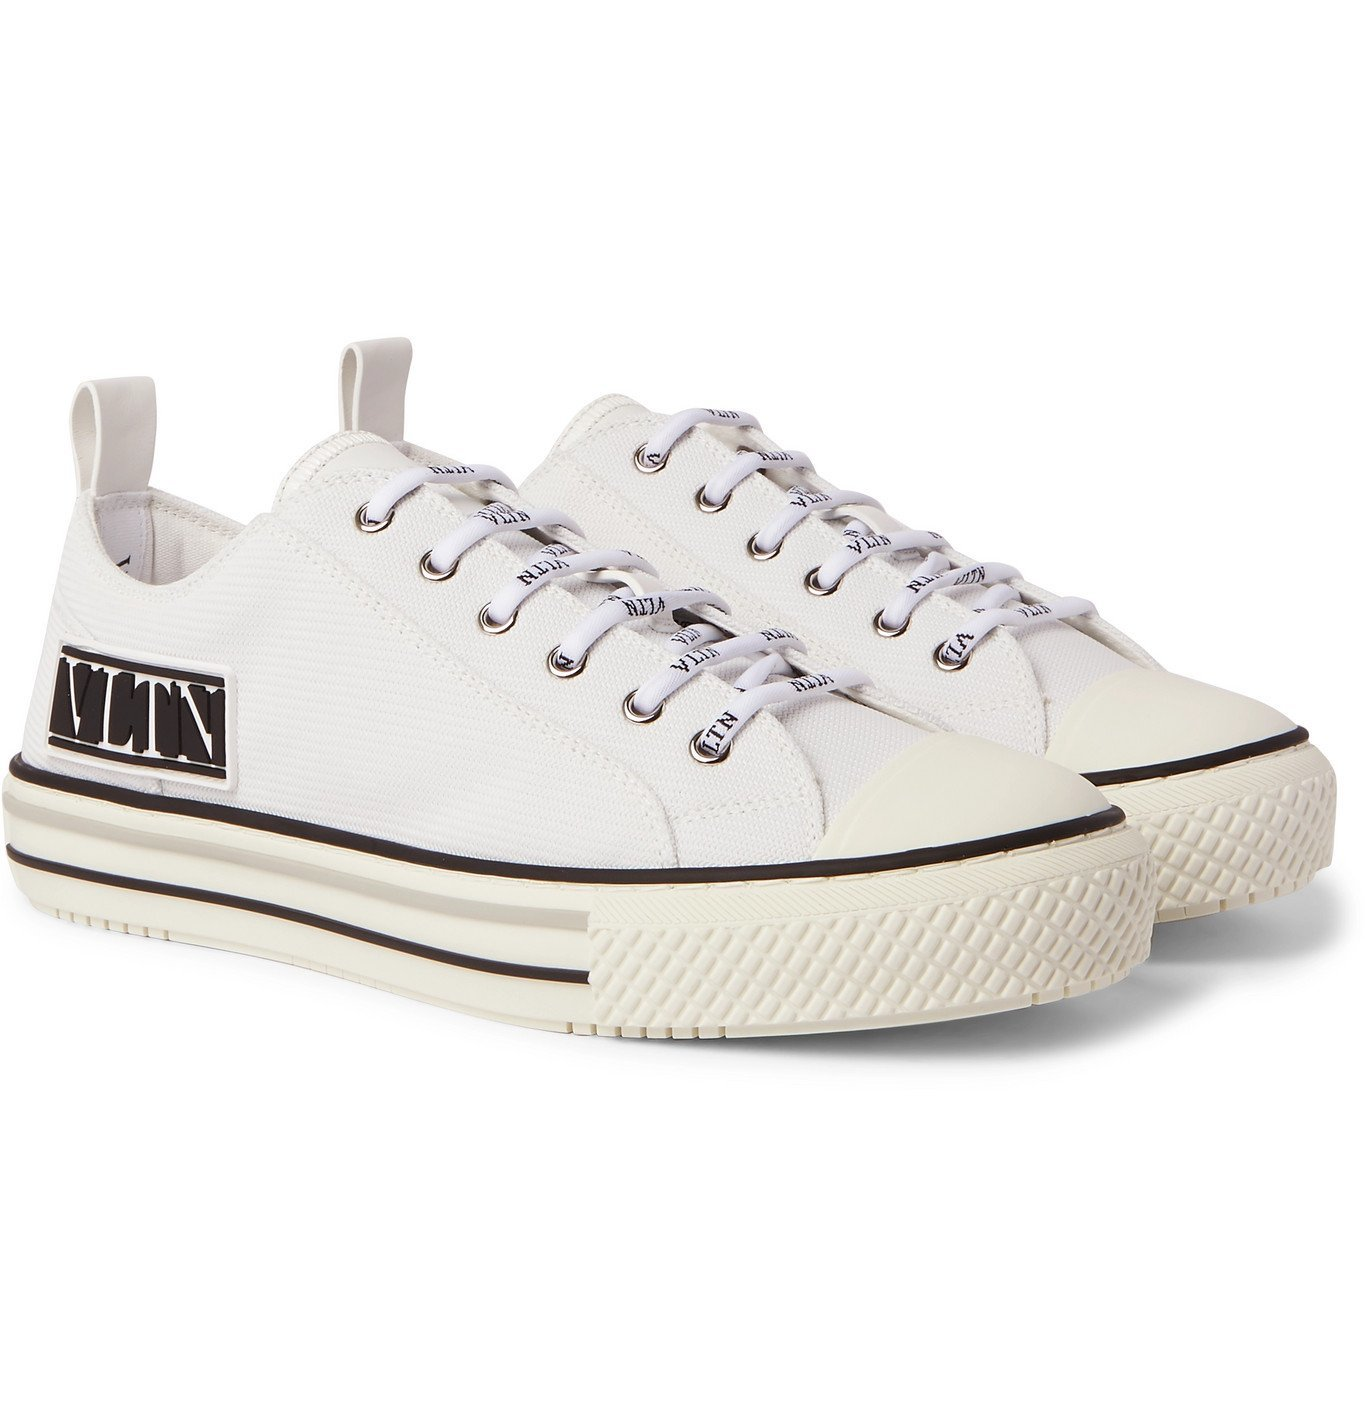 Photo: Valentino - Valentino Garavani Logo-Appliquéd Rubber-Trimmed Canvas Sneakers - White